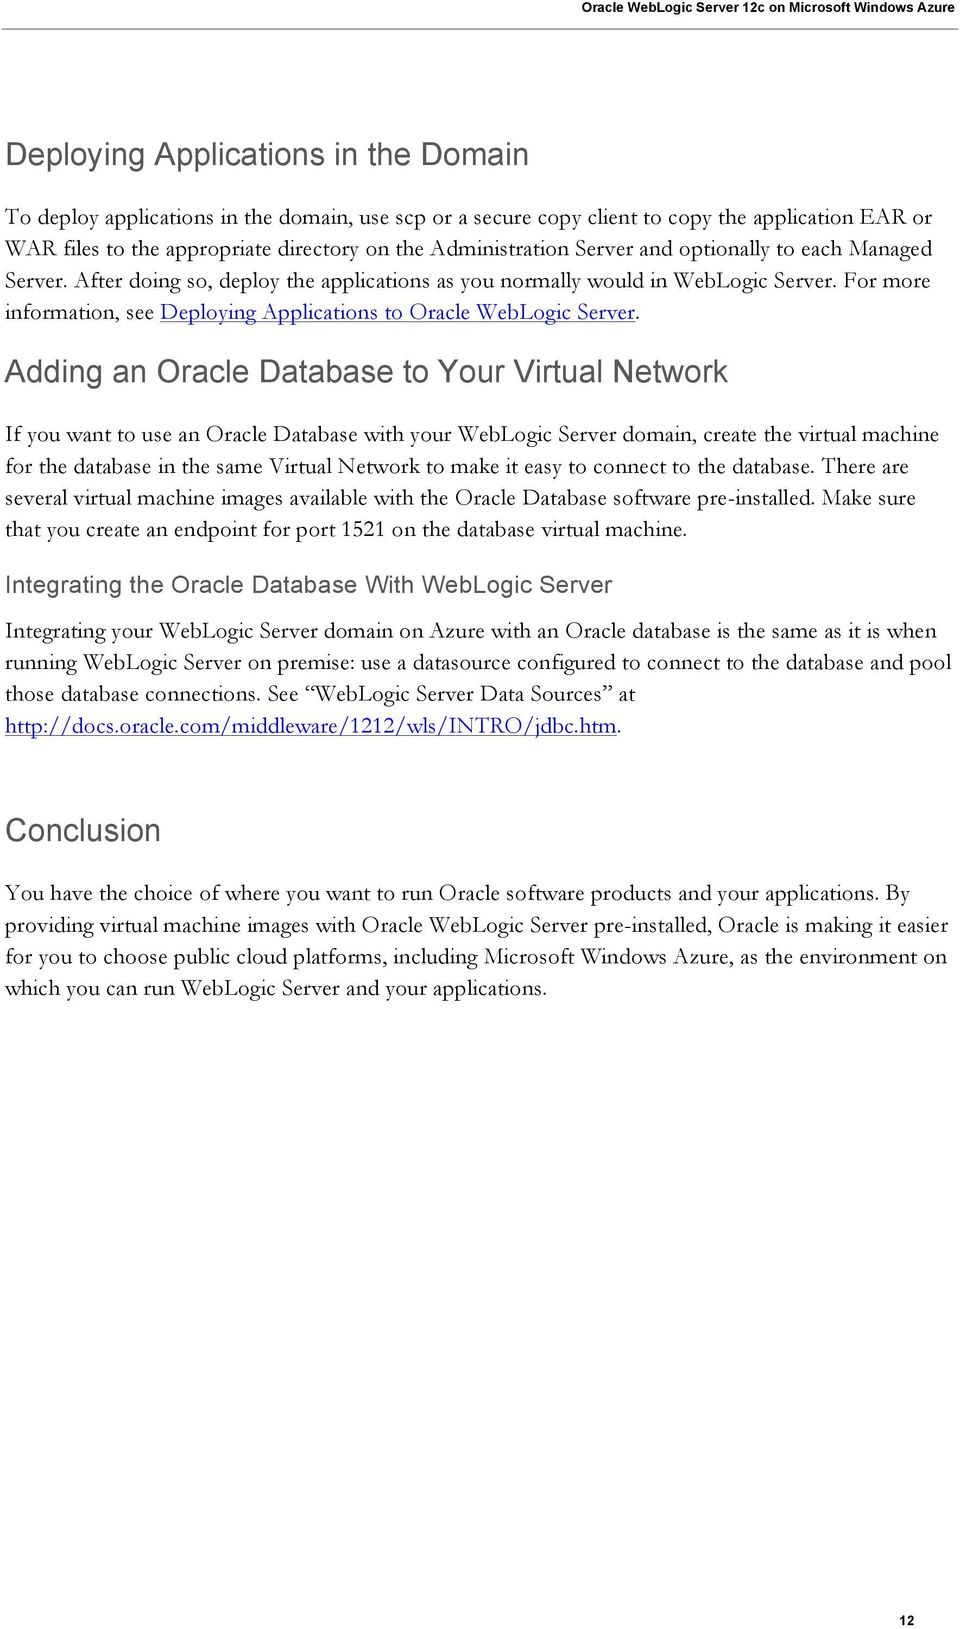 For more information, see Deploying Applications to Oracle WebLogic Server.